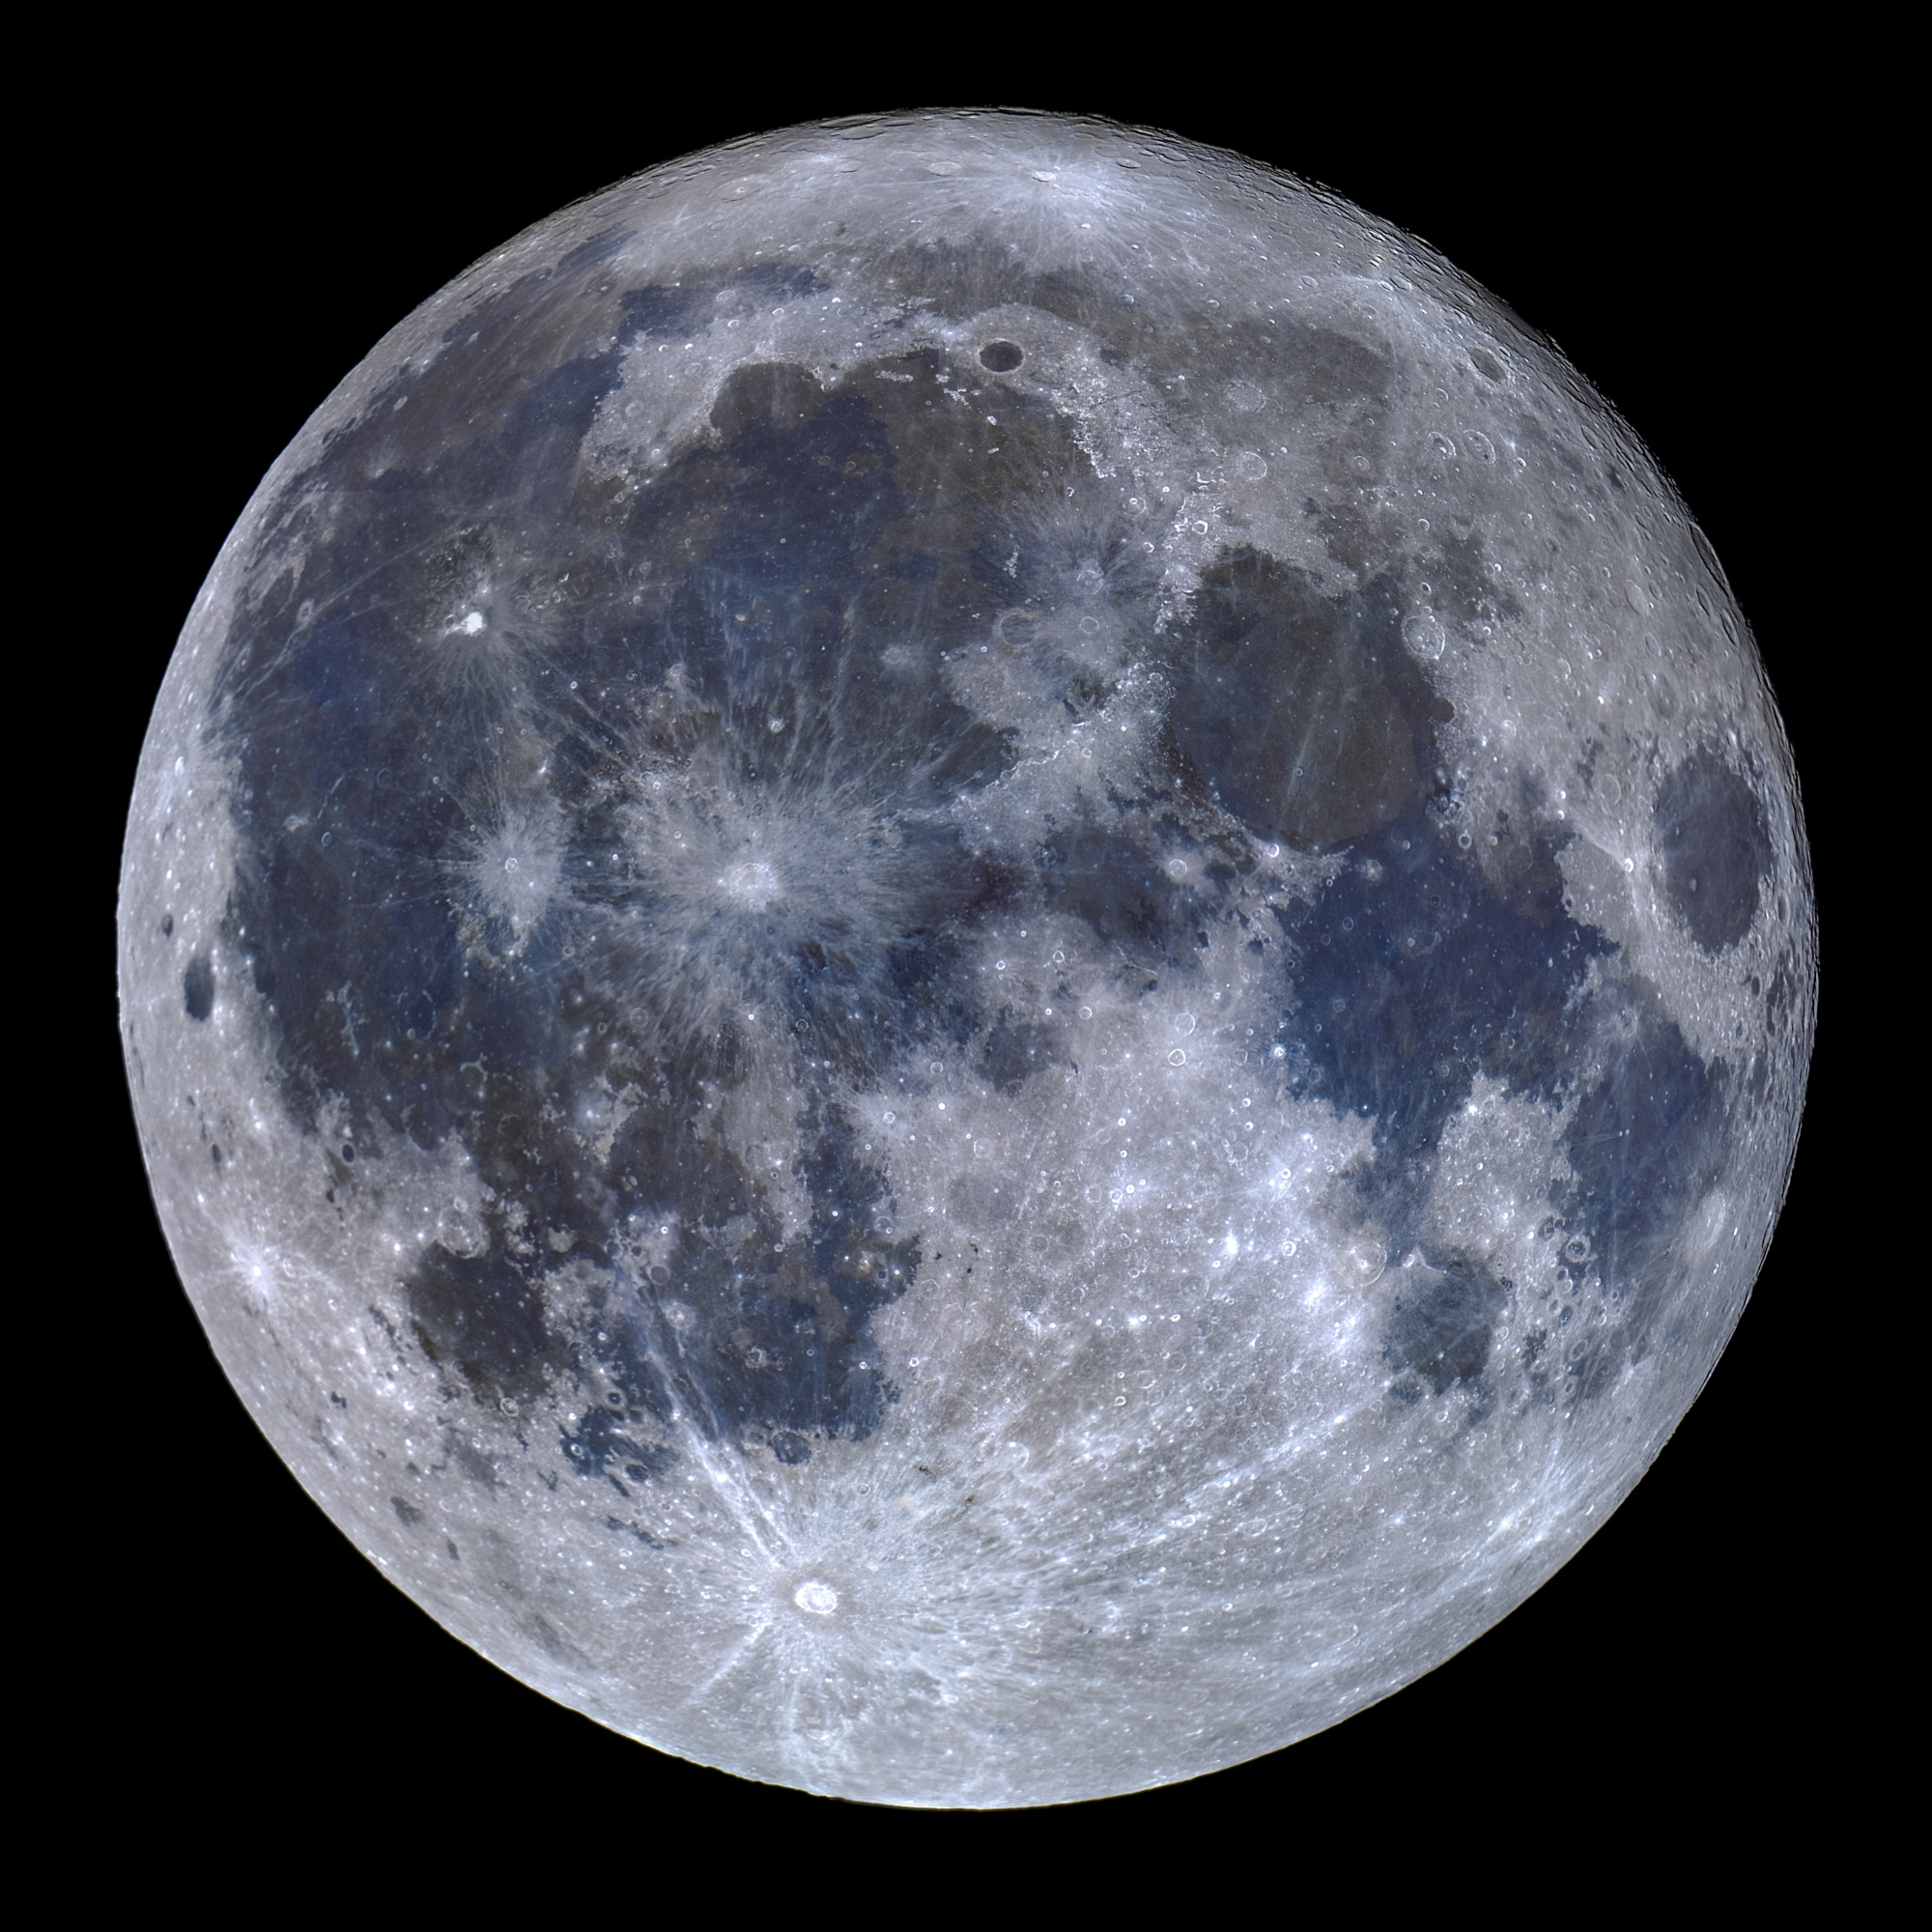 <h5>Titanium Moon / Lua de Titânio</h5><p>Celestron C14 EDGE HD (XLT) | Nikon D810a | ISO400 – Exp. 1/800 | Mosaic of four panels composed by 30 images each. Processed on Registax and PS CC 2019. Cumeada Observatory from Dark Sky® Alqueva Reserve, Reguengos de Monsaraz. © Miguel Claro</p>